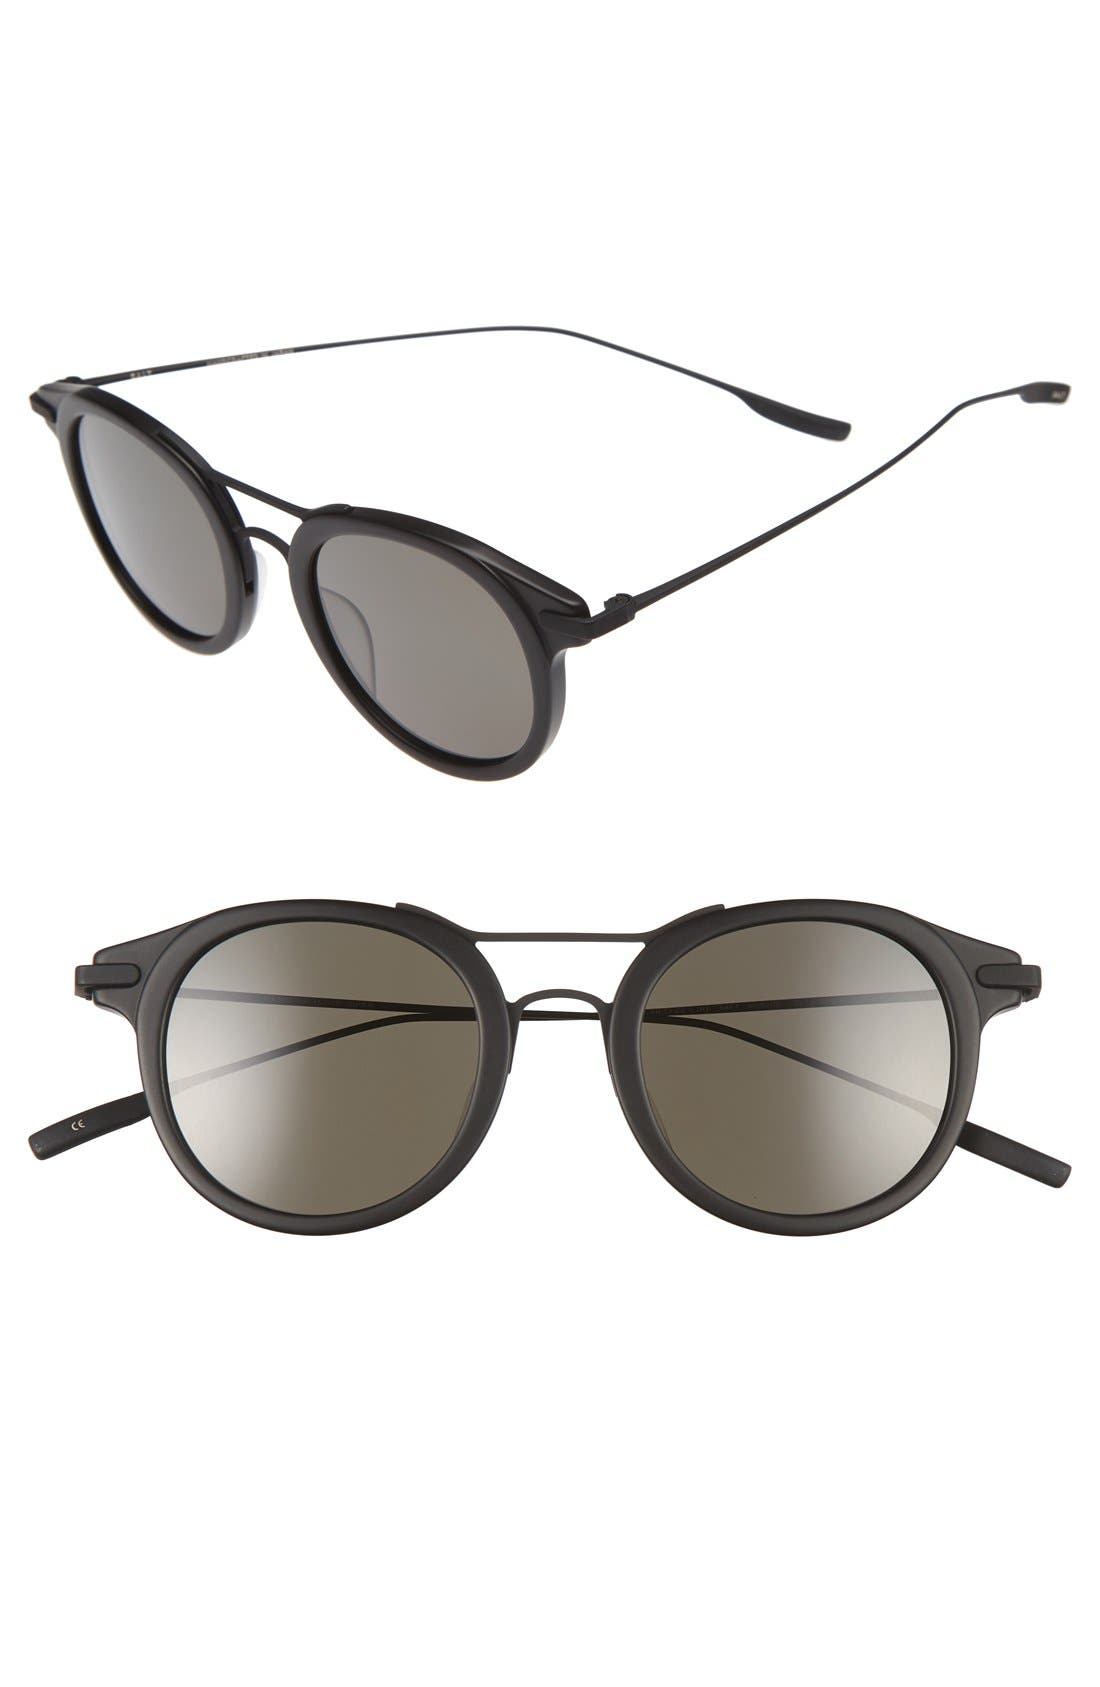 Taft 46mm Polarized Round Sunglasses,                             Alternate thumbnail 2, color,                             MATTE BLACK/ BLACK SAND